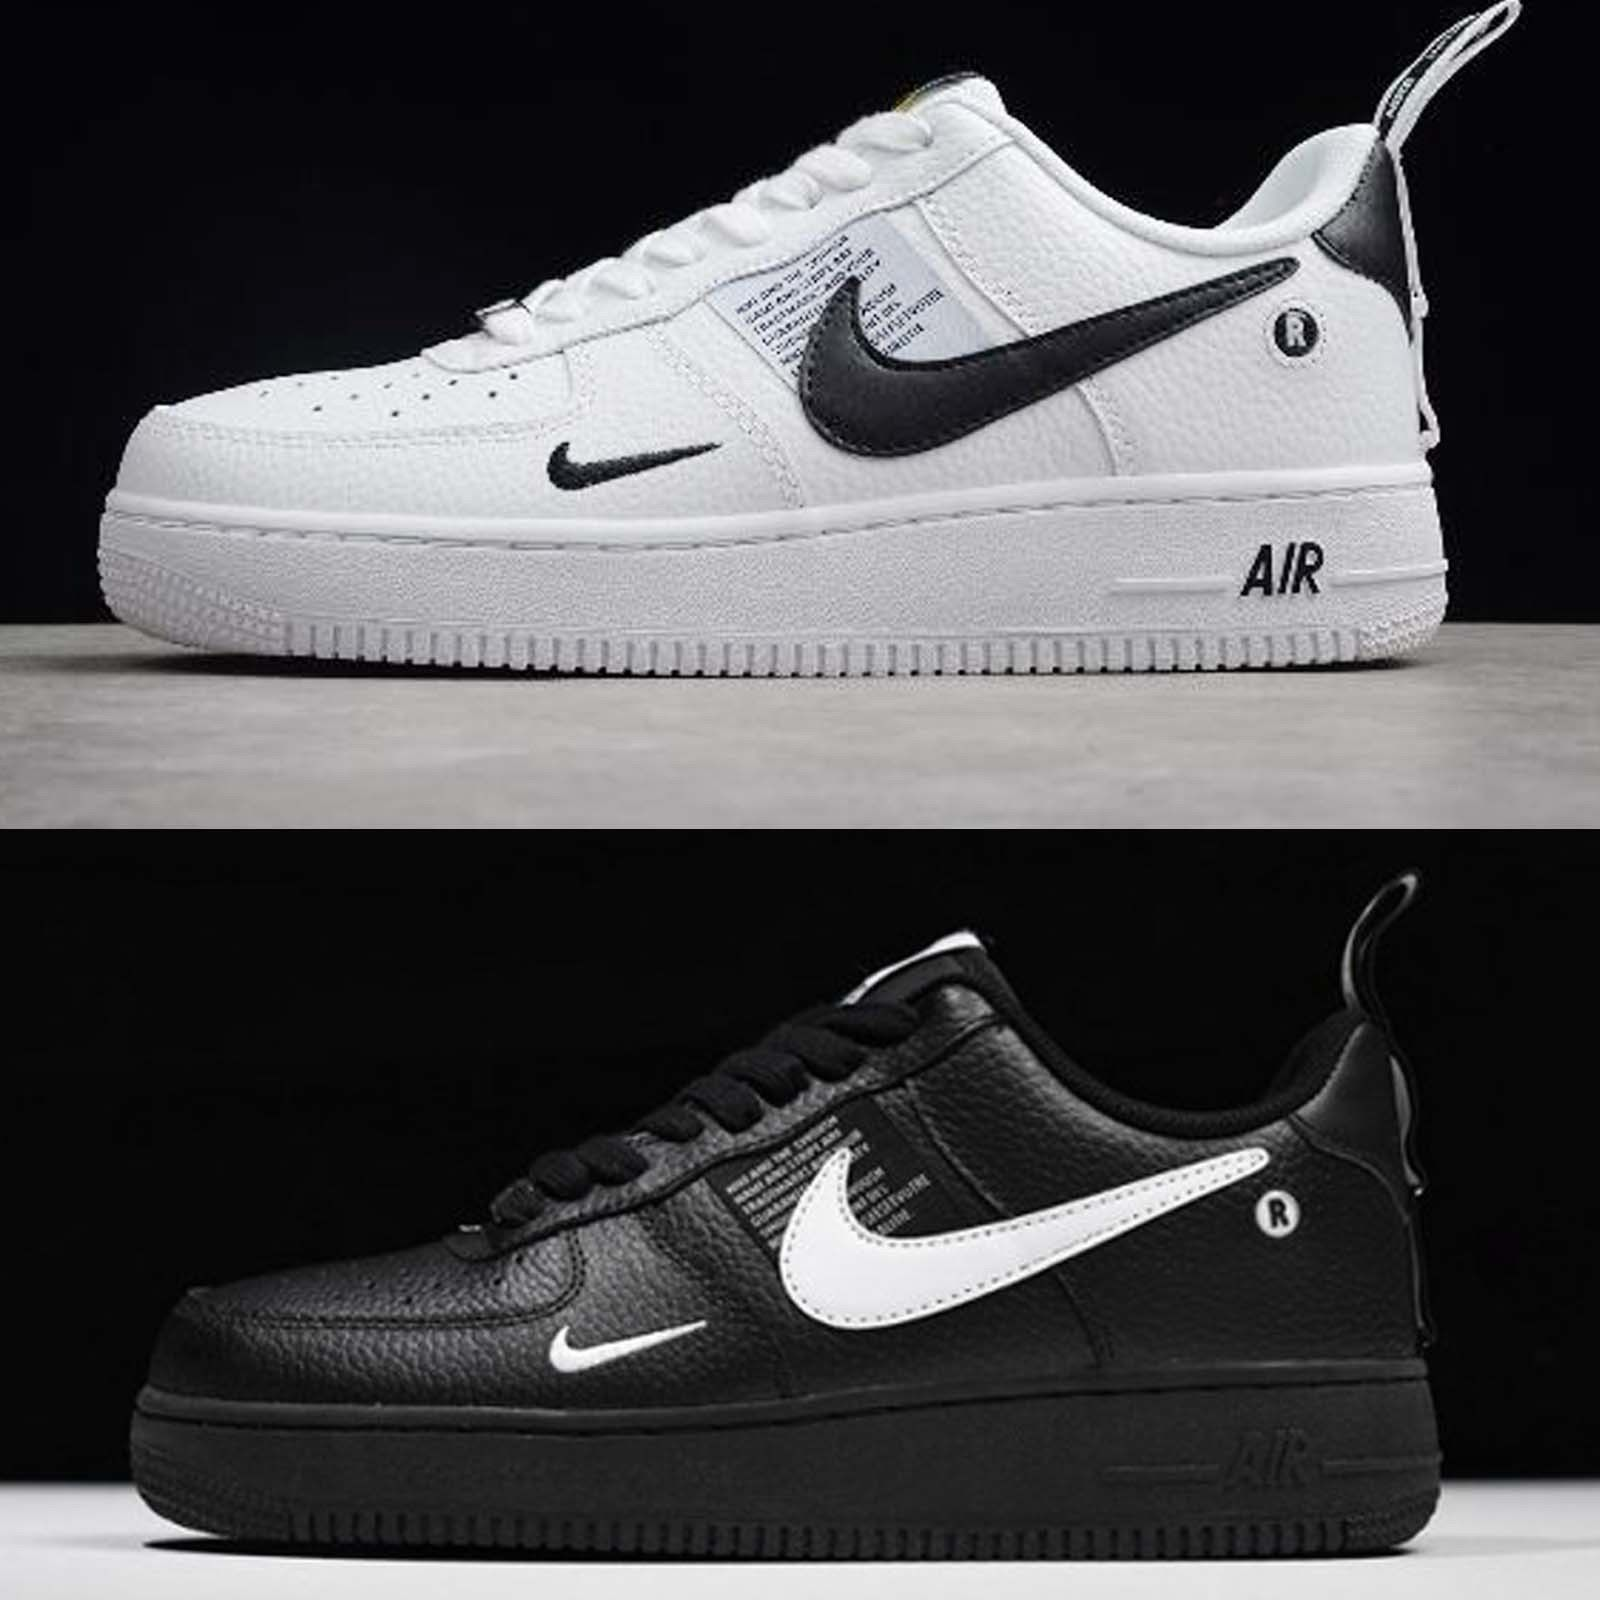 new arrival 0d96b c215f Nike Air Force 1 07 LV8 utility back and white